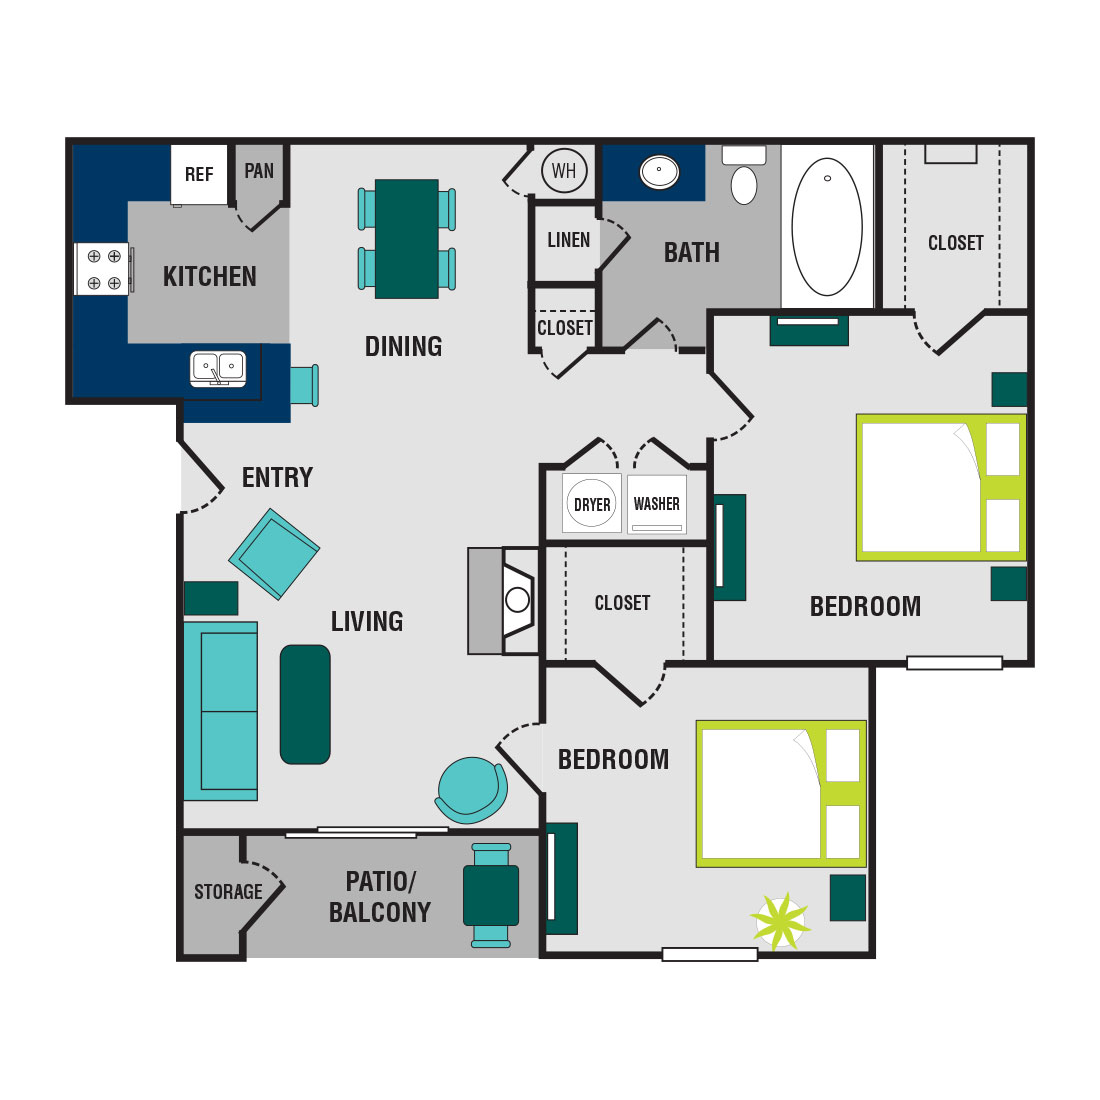 Floorplan - 2 Bed/1 Bath - Upgraded image